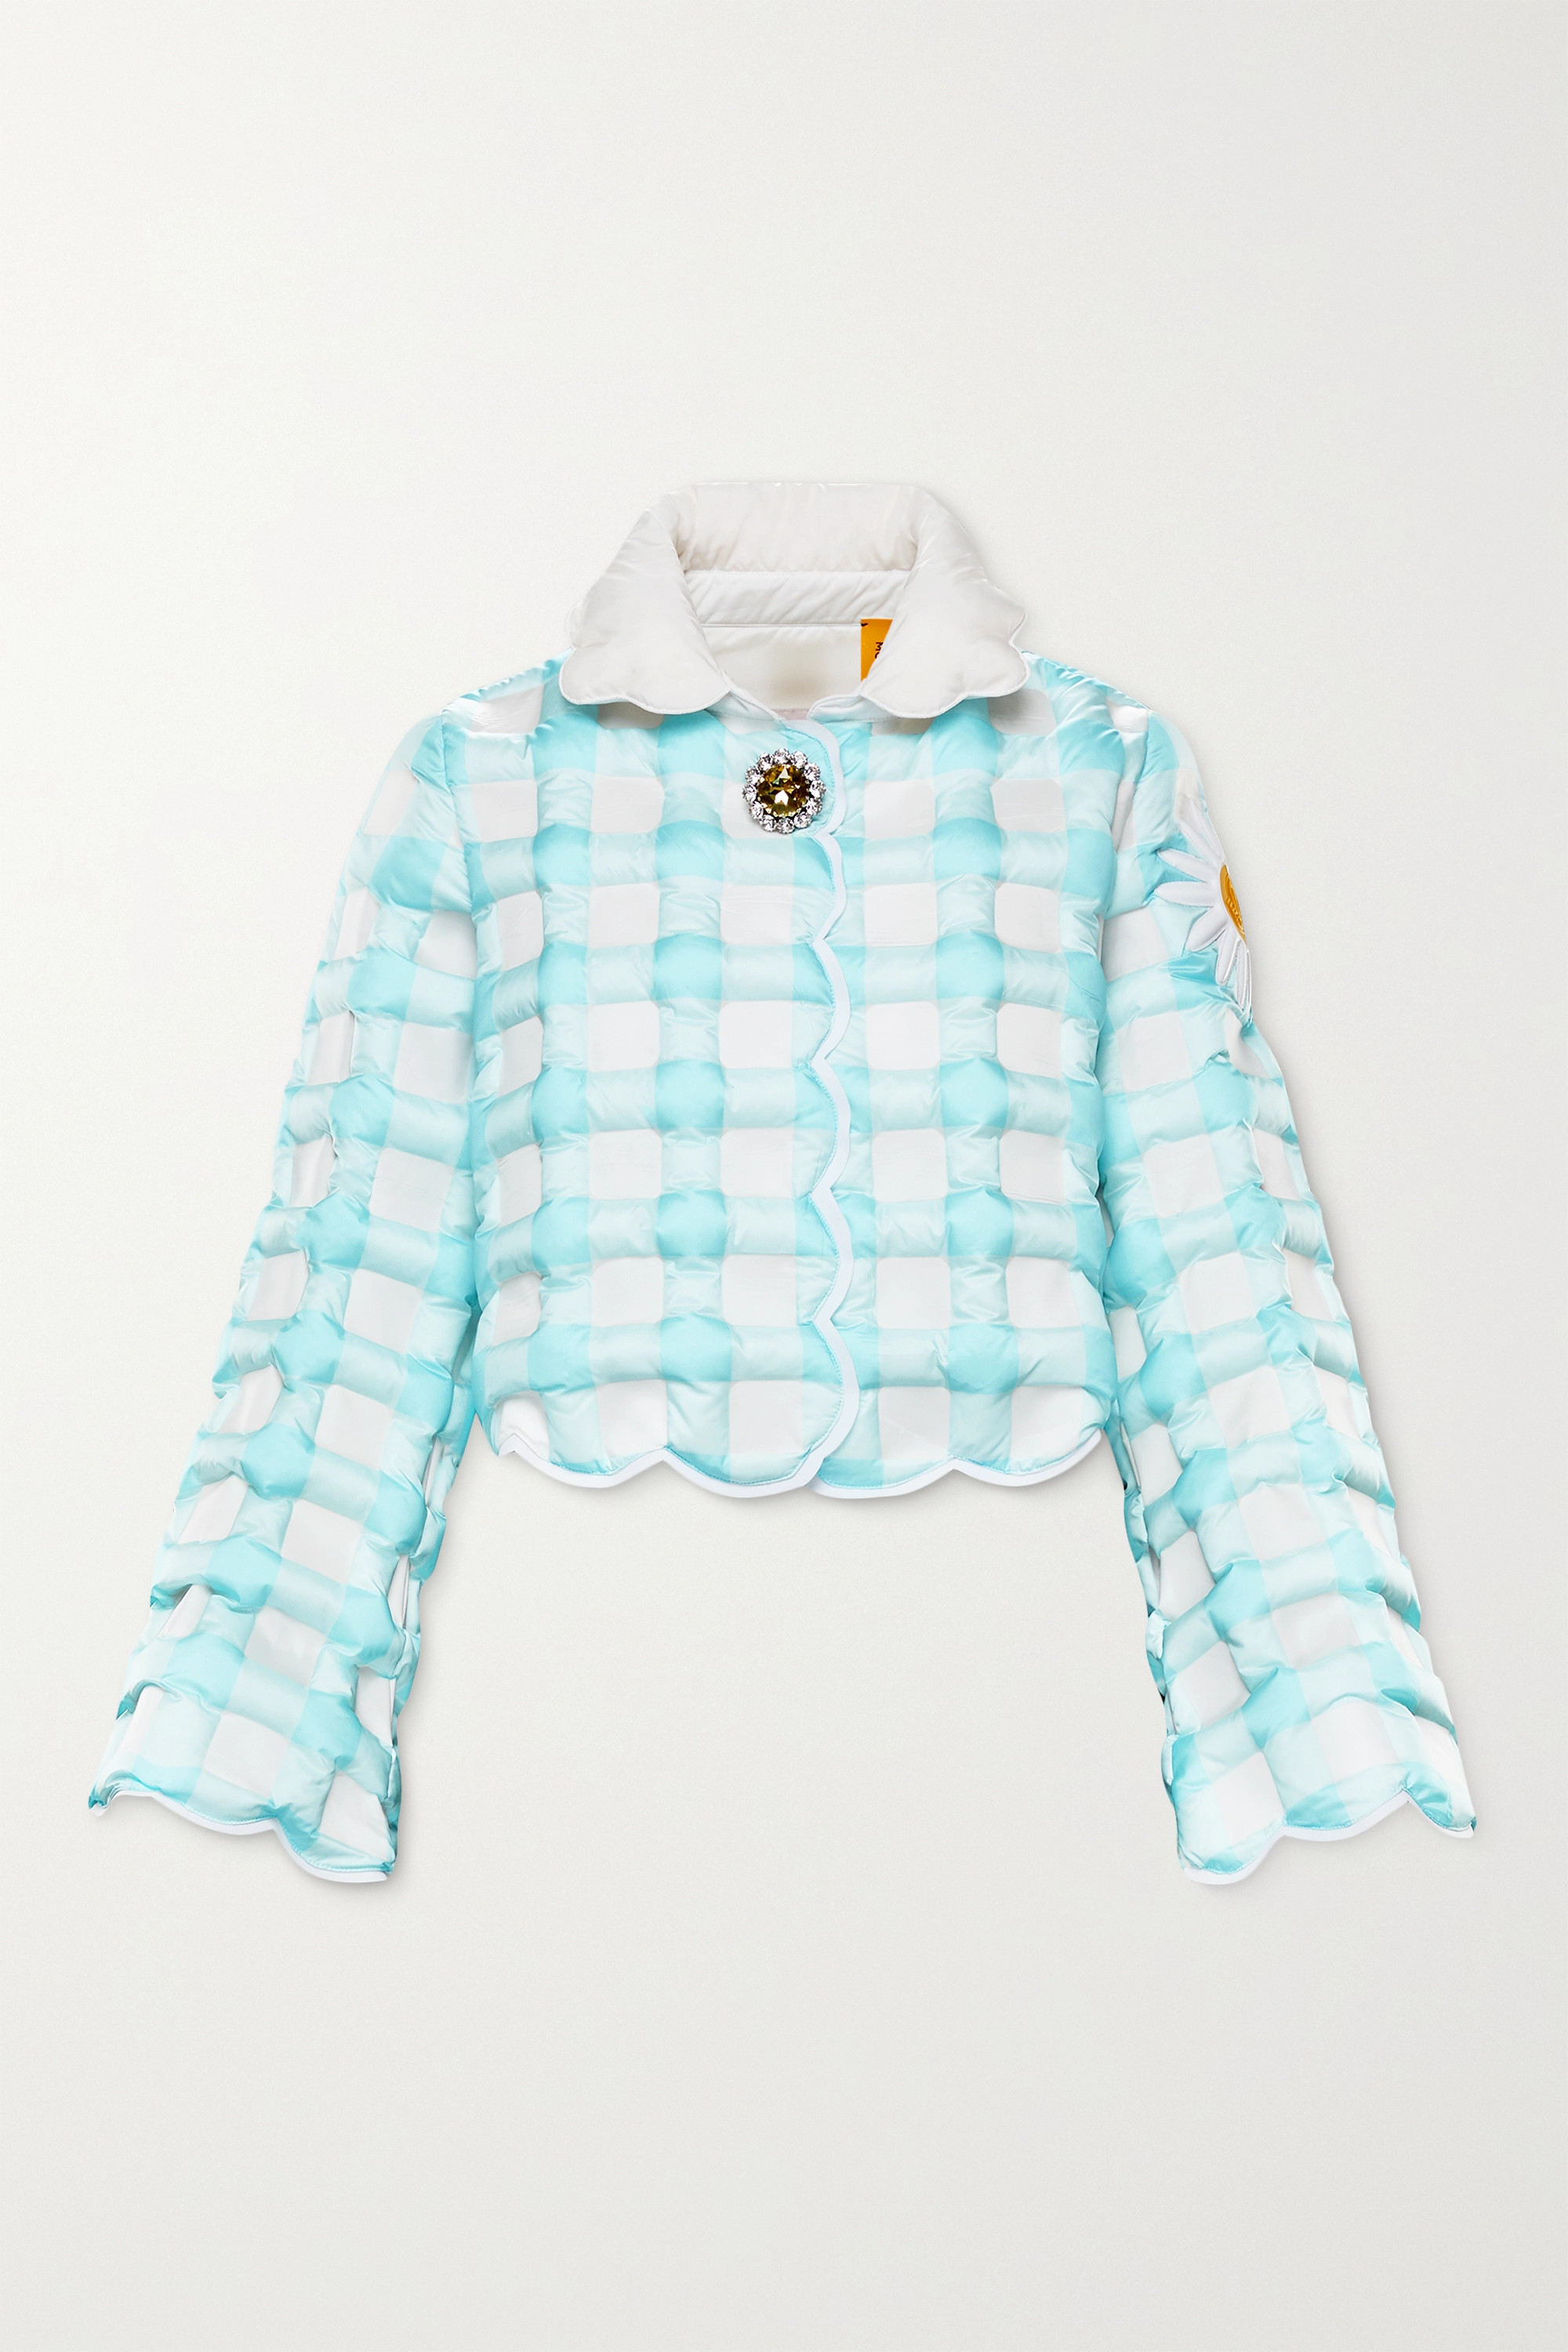 Moncler Genius + 8 Richard Quinn Elke cropped checked quilted shell down jacket